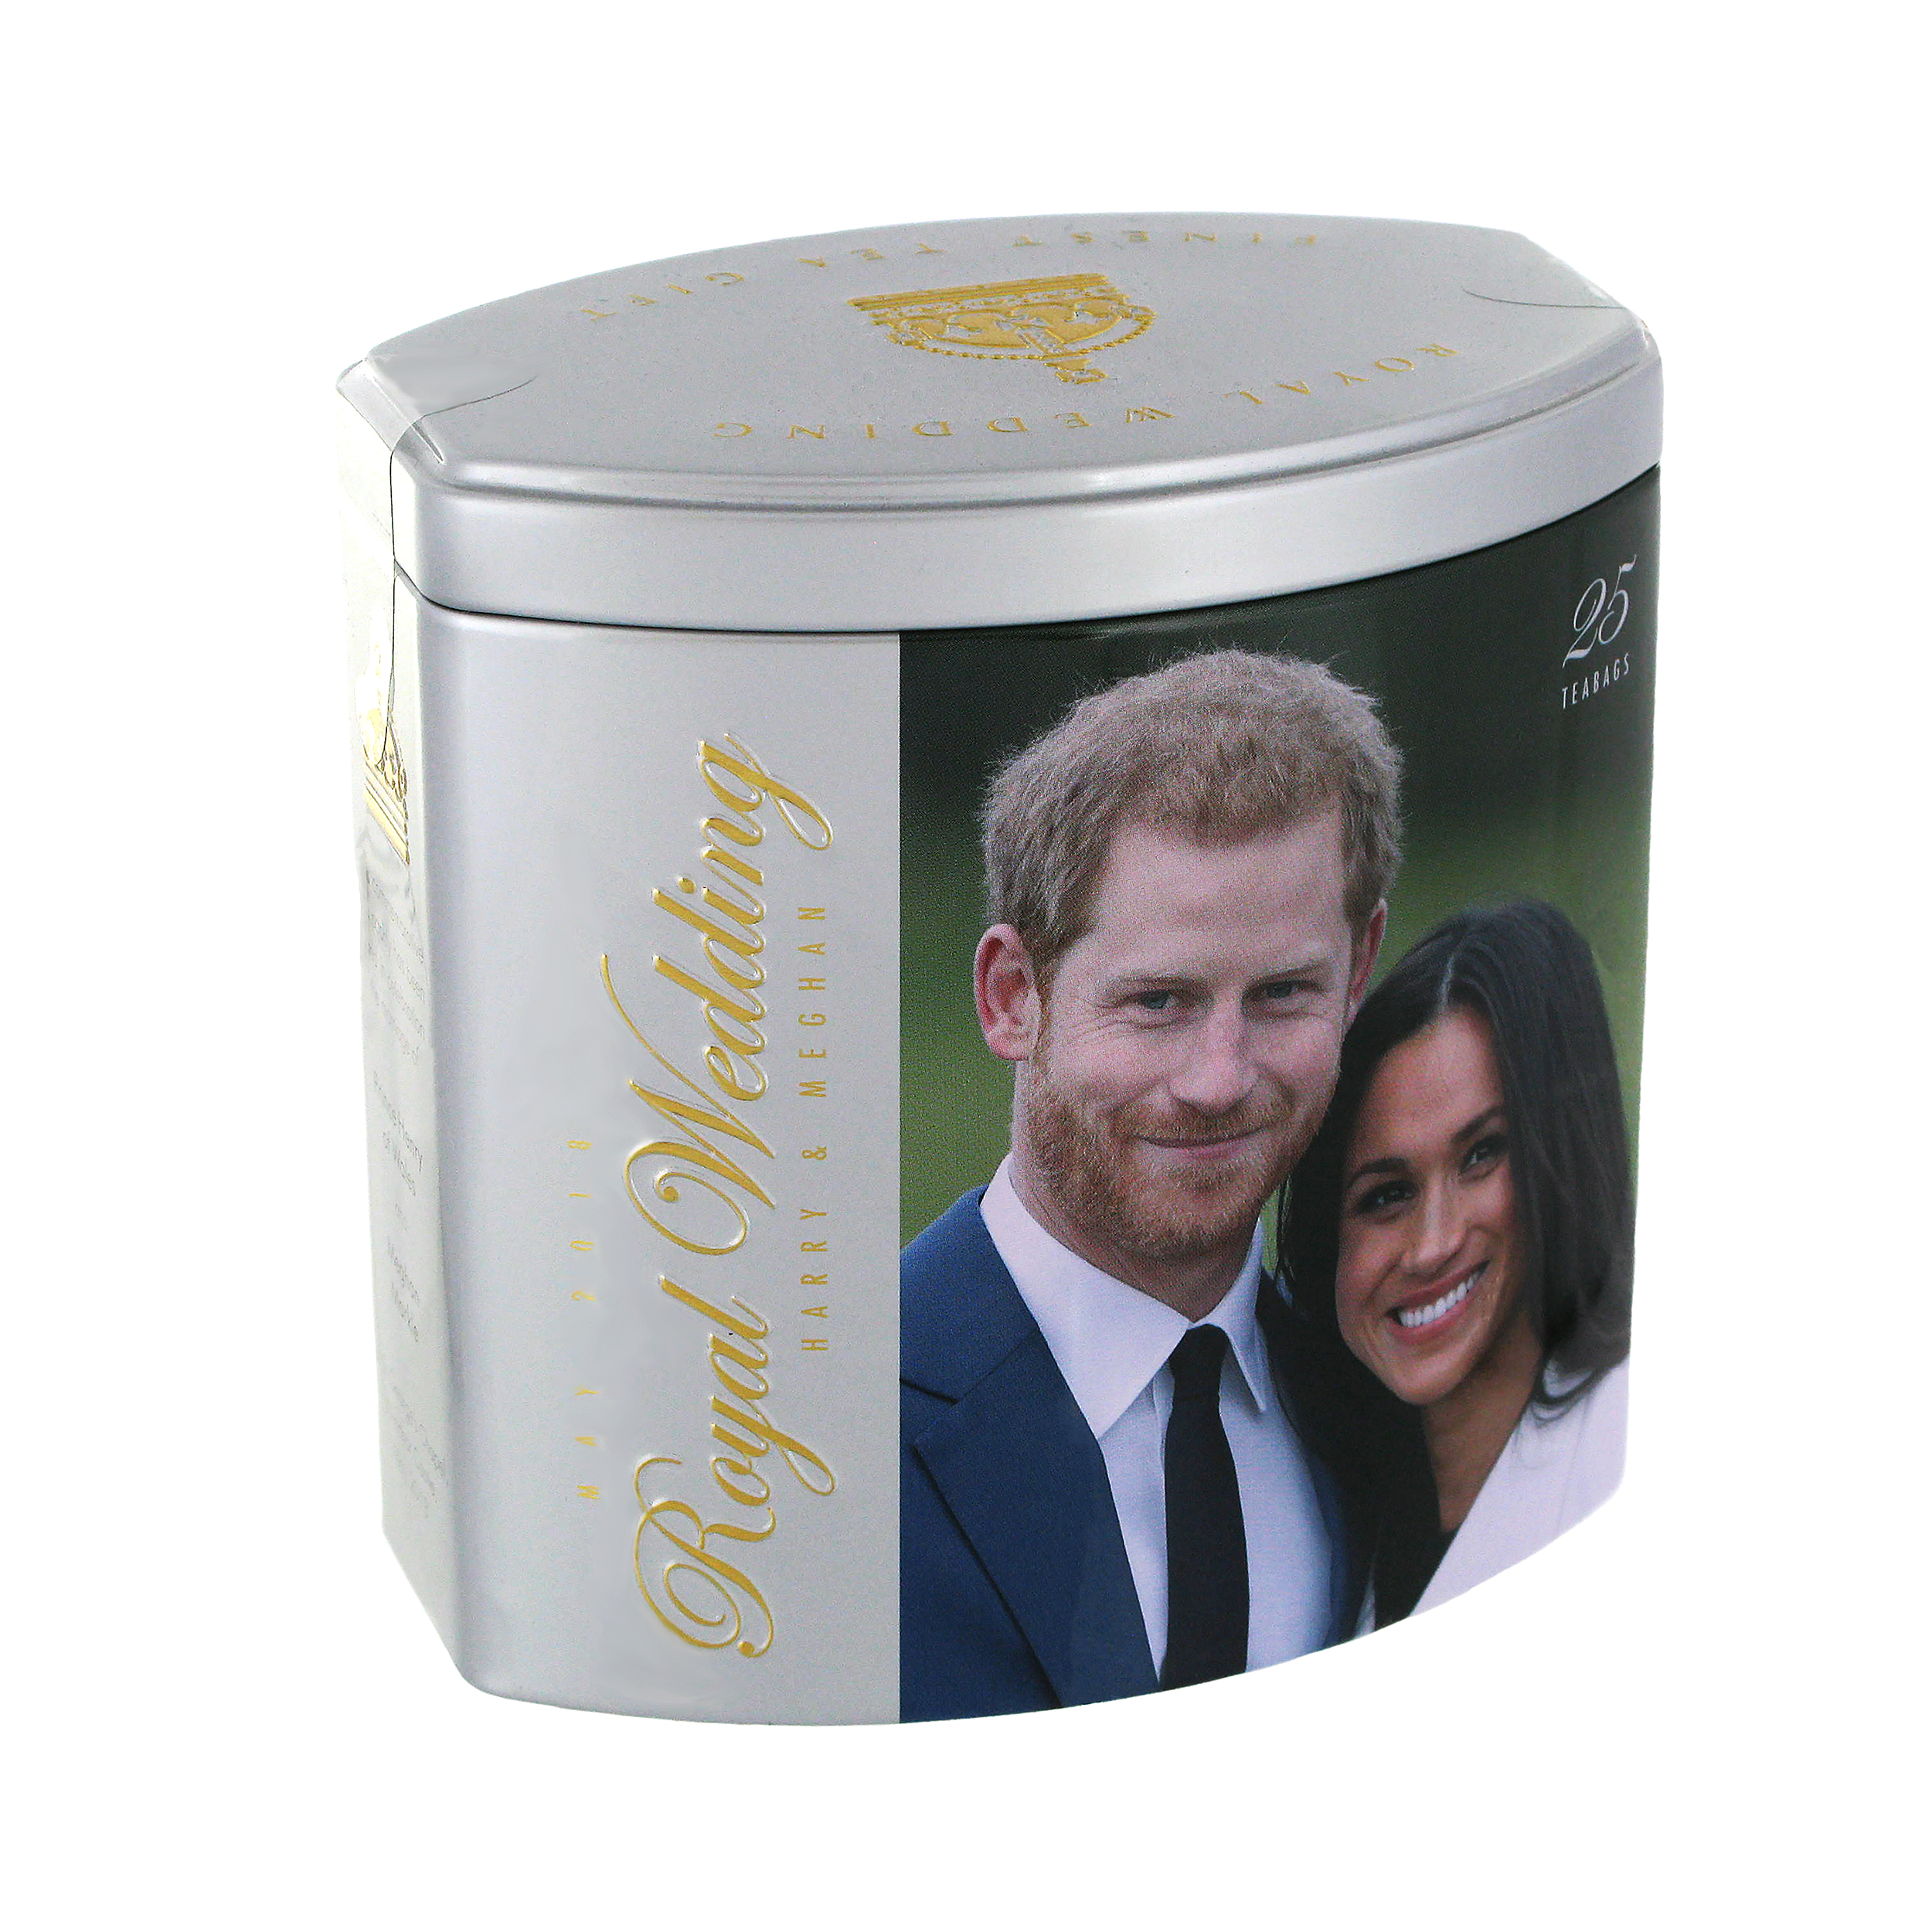 The Duke and Duchess of Sussex tea caddy